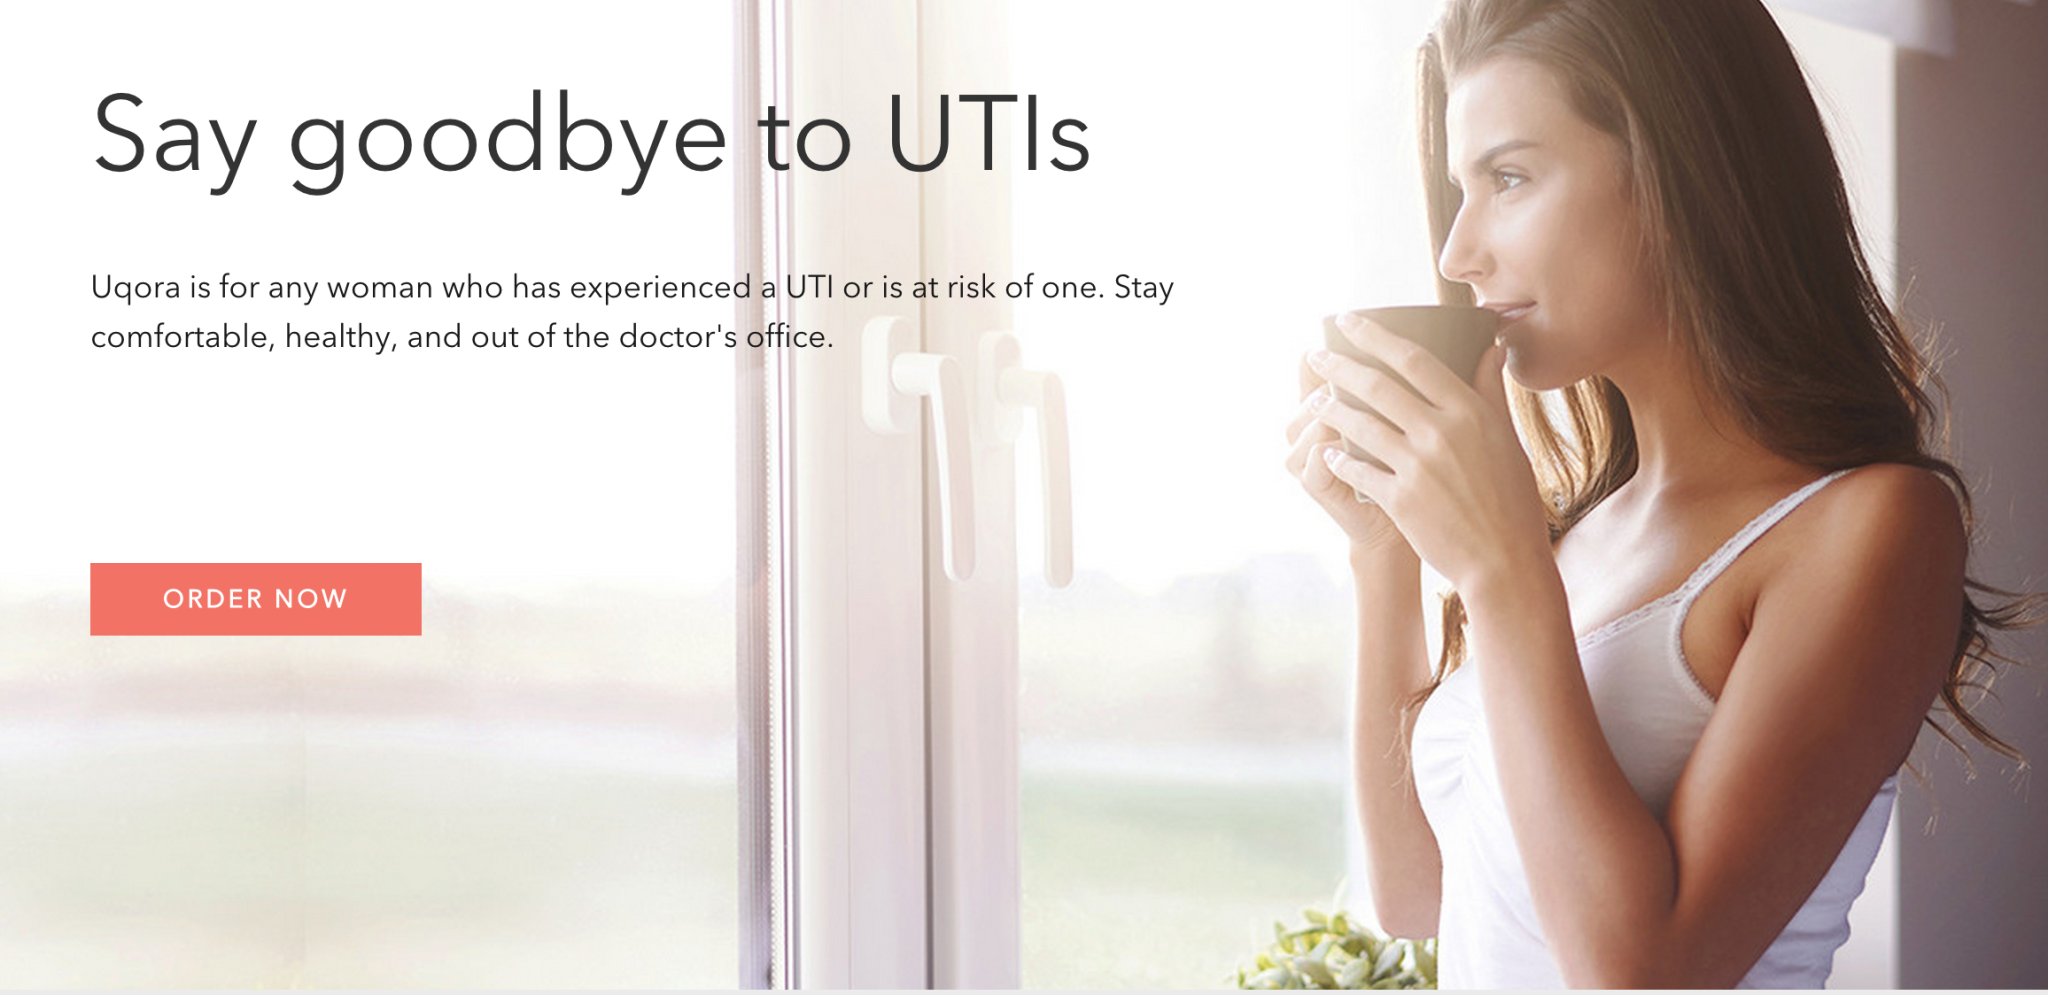 Is it bad to have sex with a uti